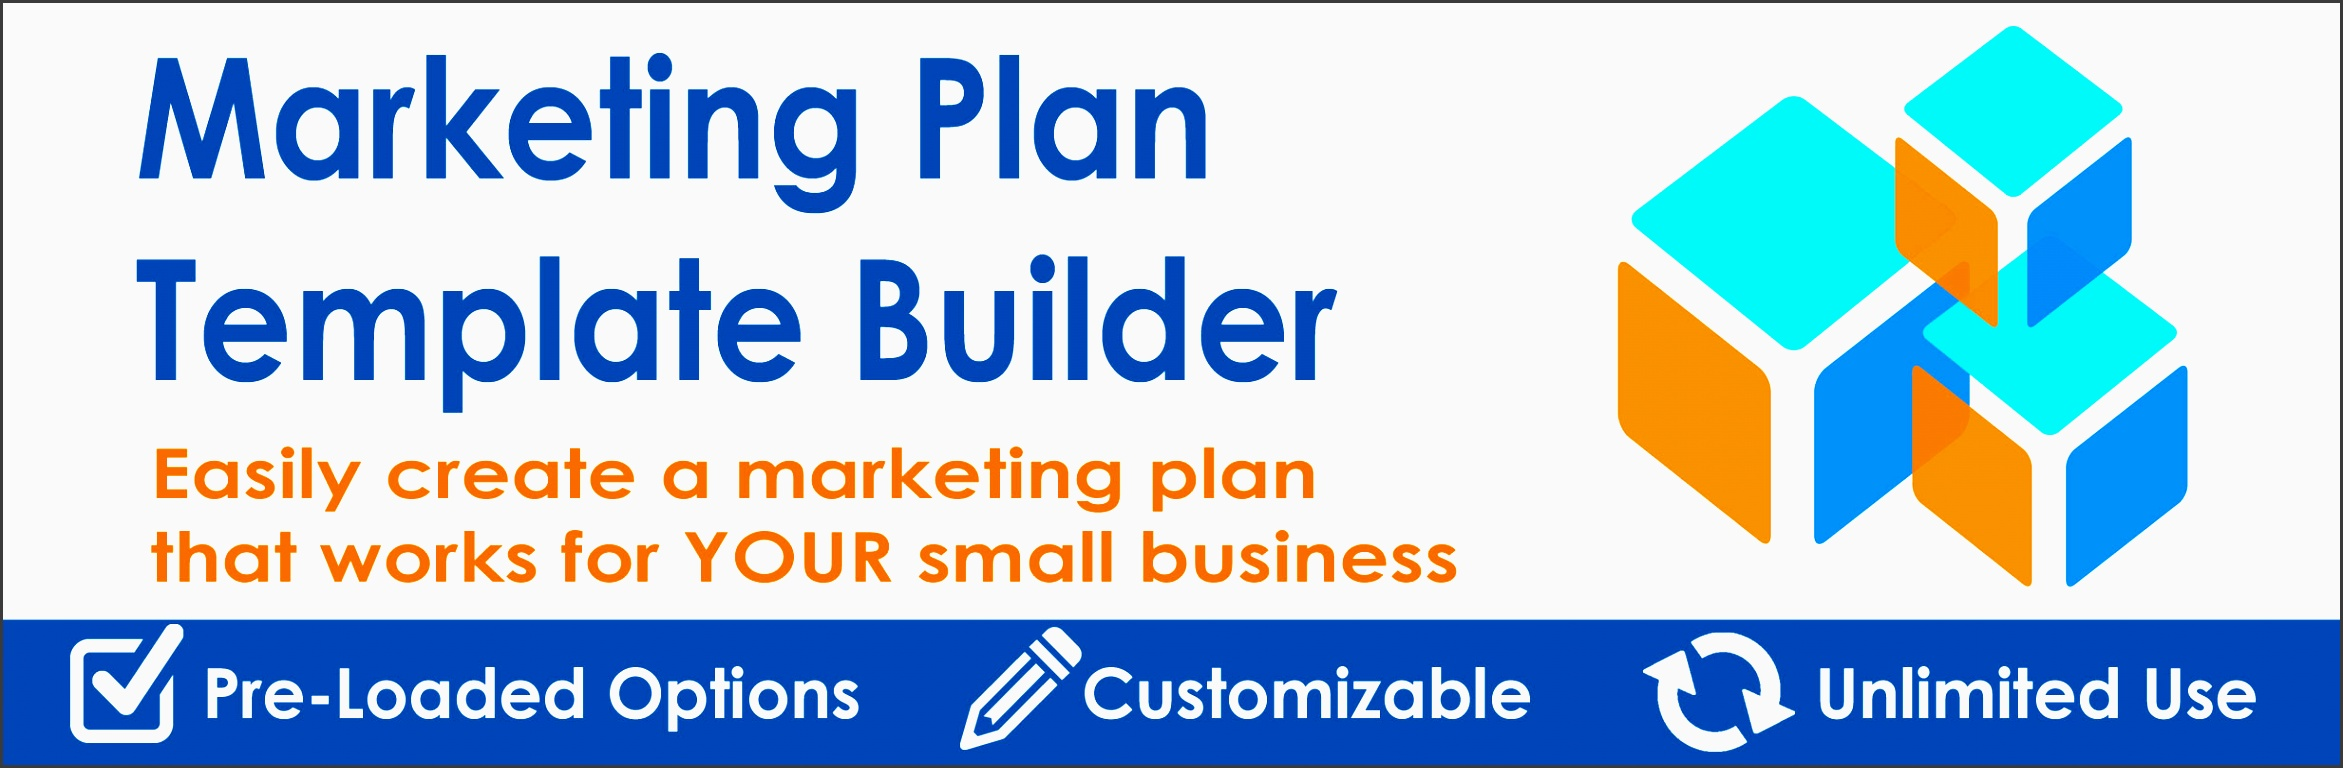 marketing plan template builder for tactics and bud plans small business marketing tools